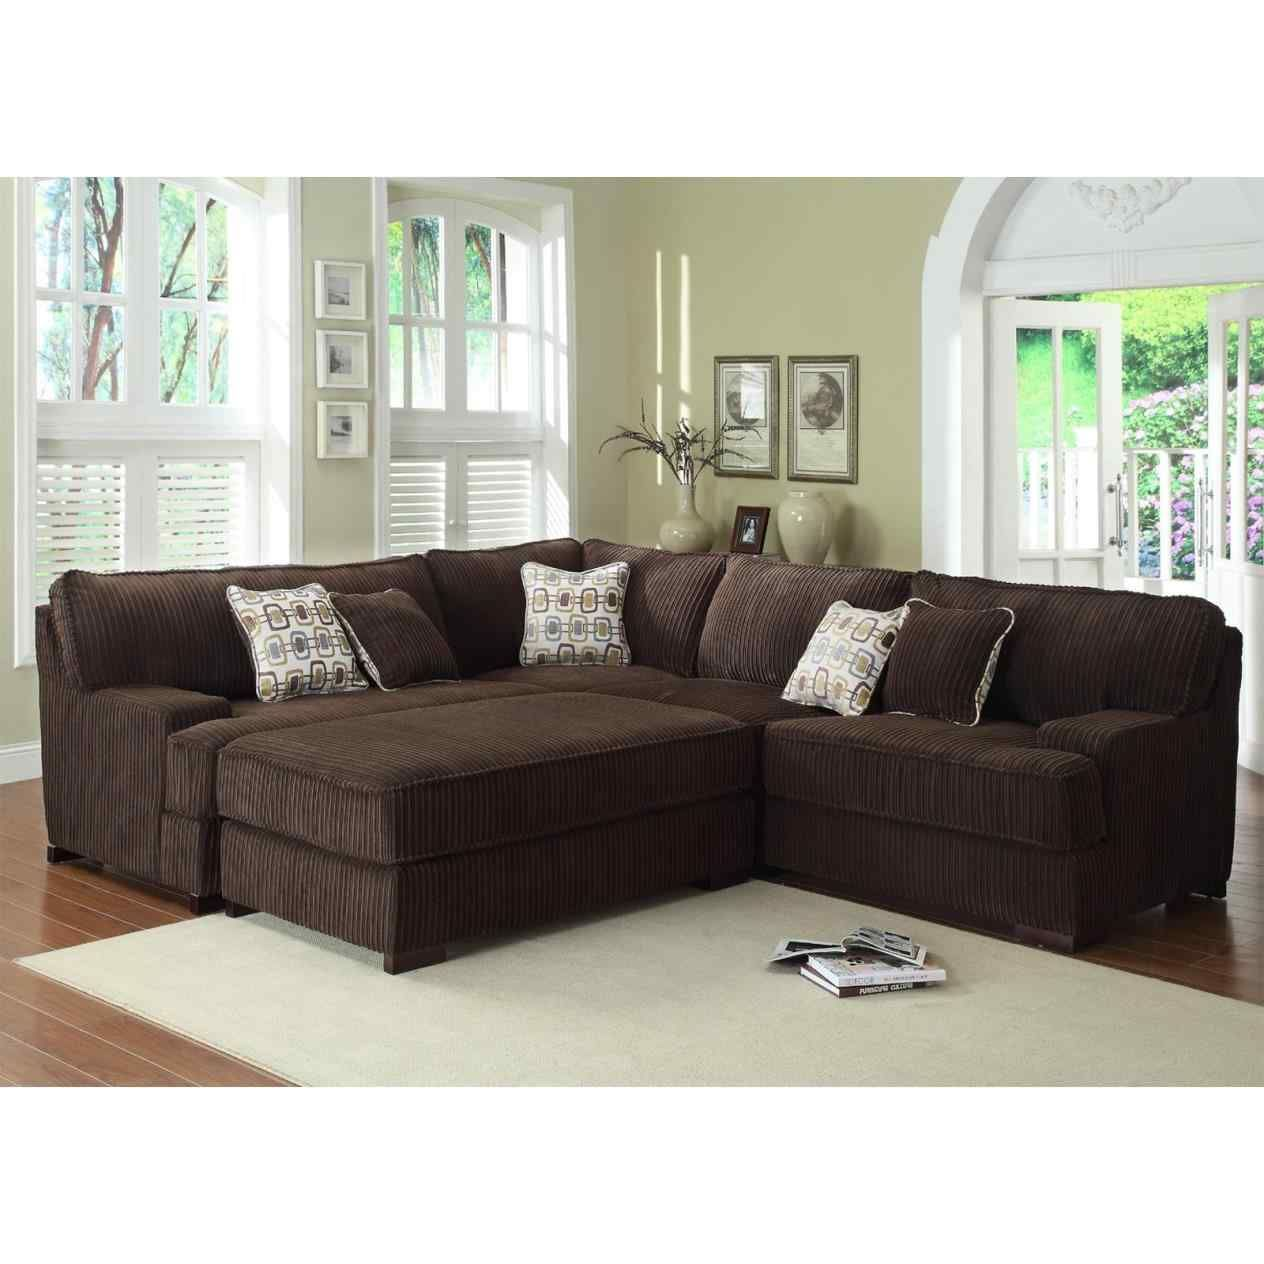 Incroyable Fine Coaster Chenille And Leather Sectional Sofa Find A Local Furniture  Store With Fine Living Room